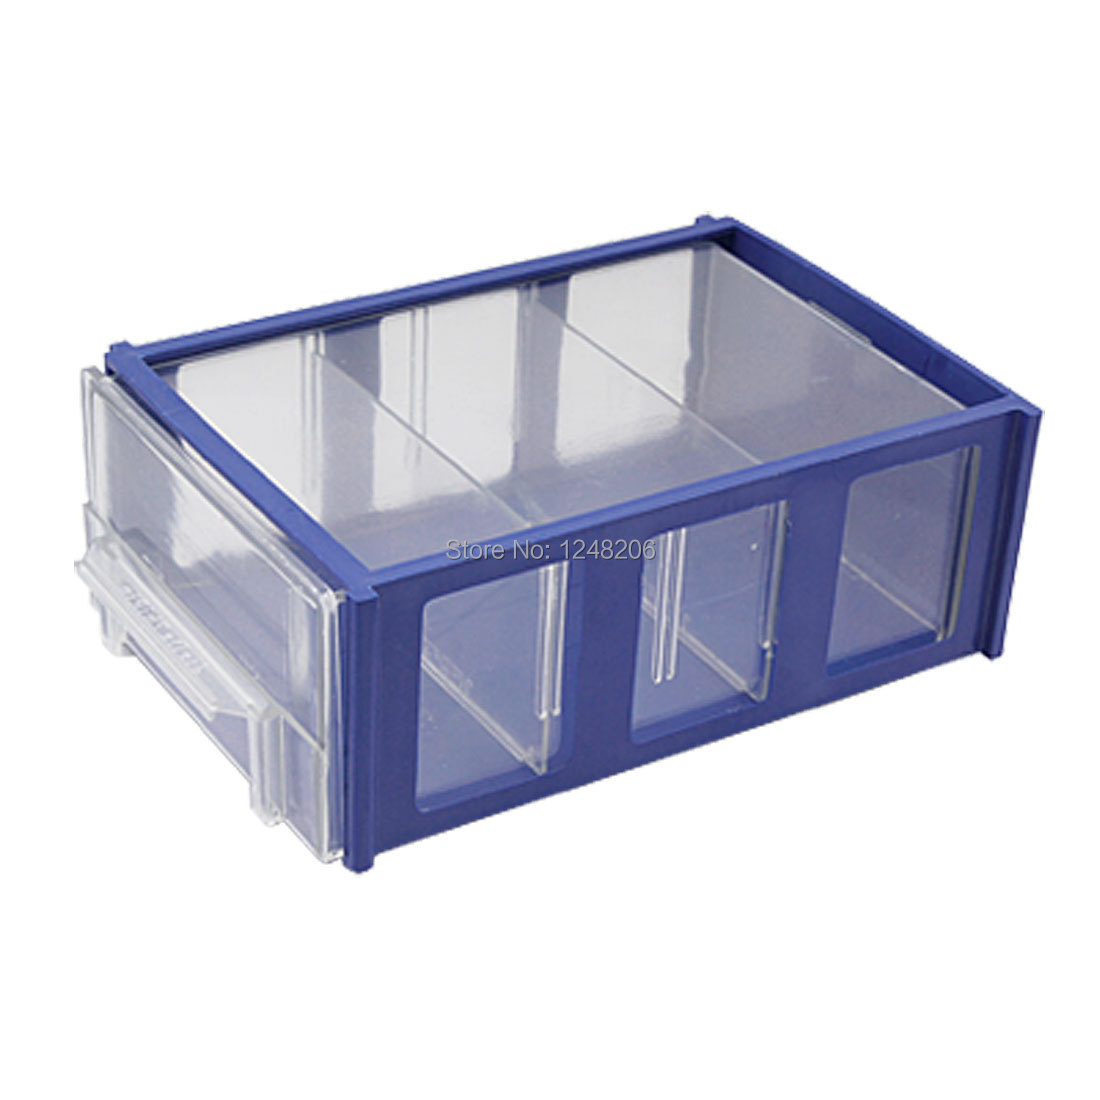 in plastic strong contain malaysia multi drawer box garden organizer bins from drawers sundries on function colors storage shoe clear shoes case home fashion boxes available double